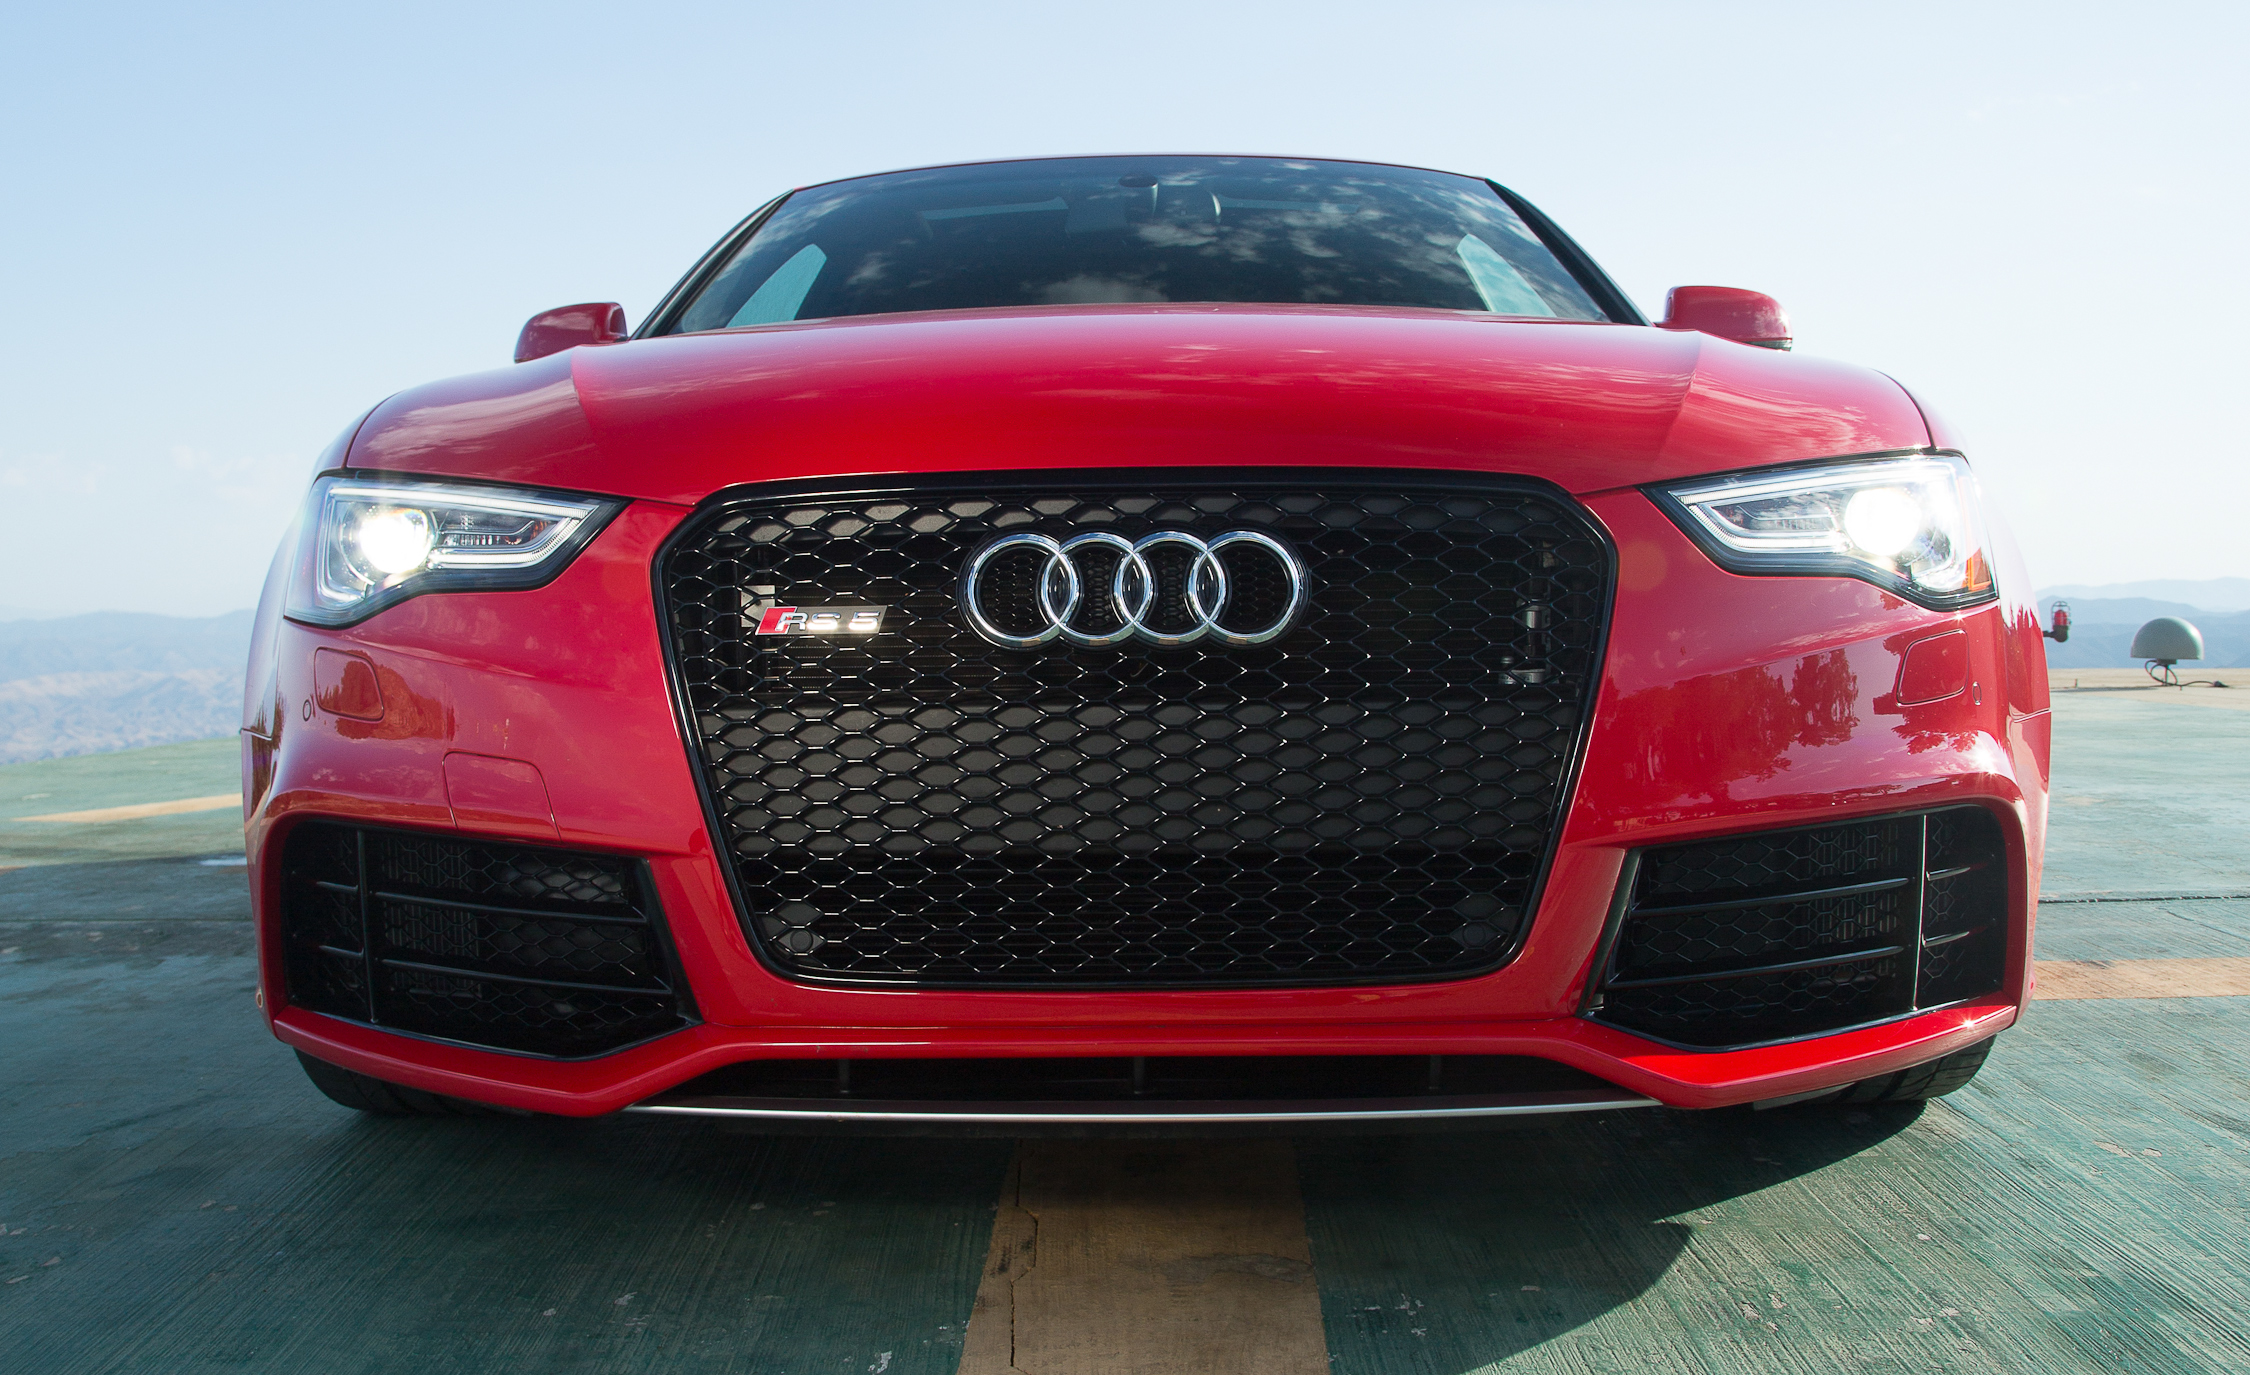 2013 Audi RS 5 Exterior Front End (Photo 6 of 41)